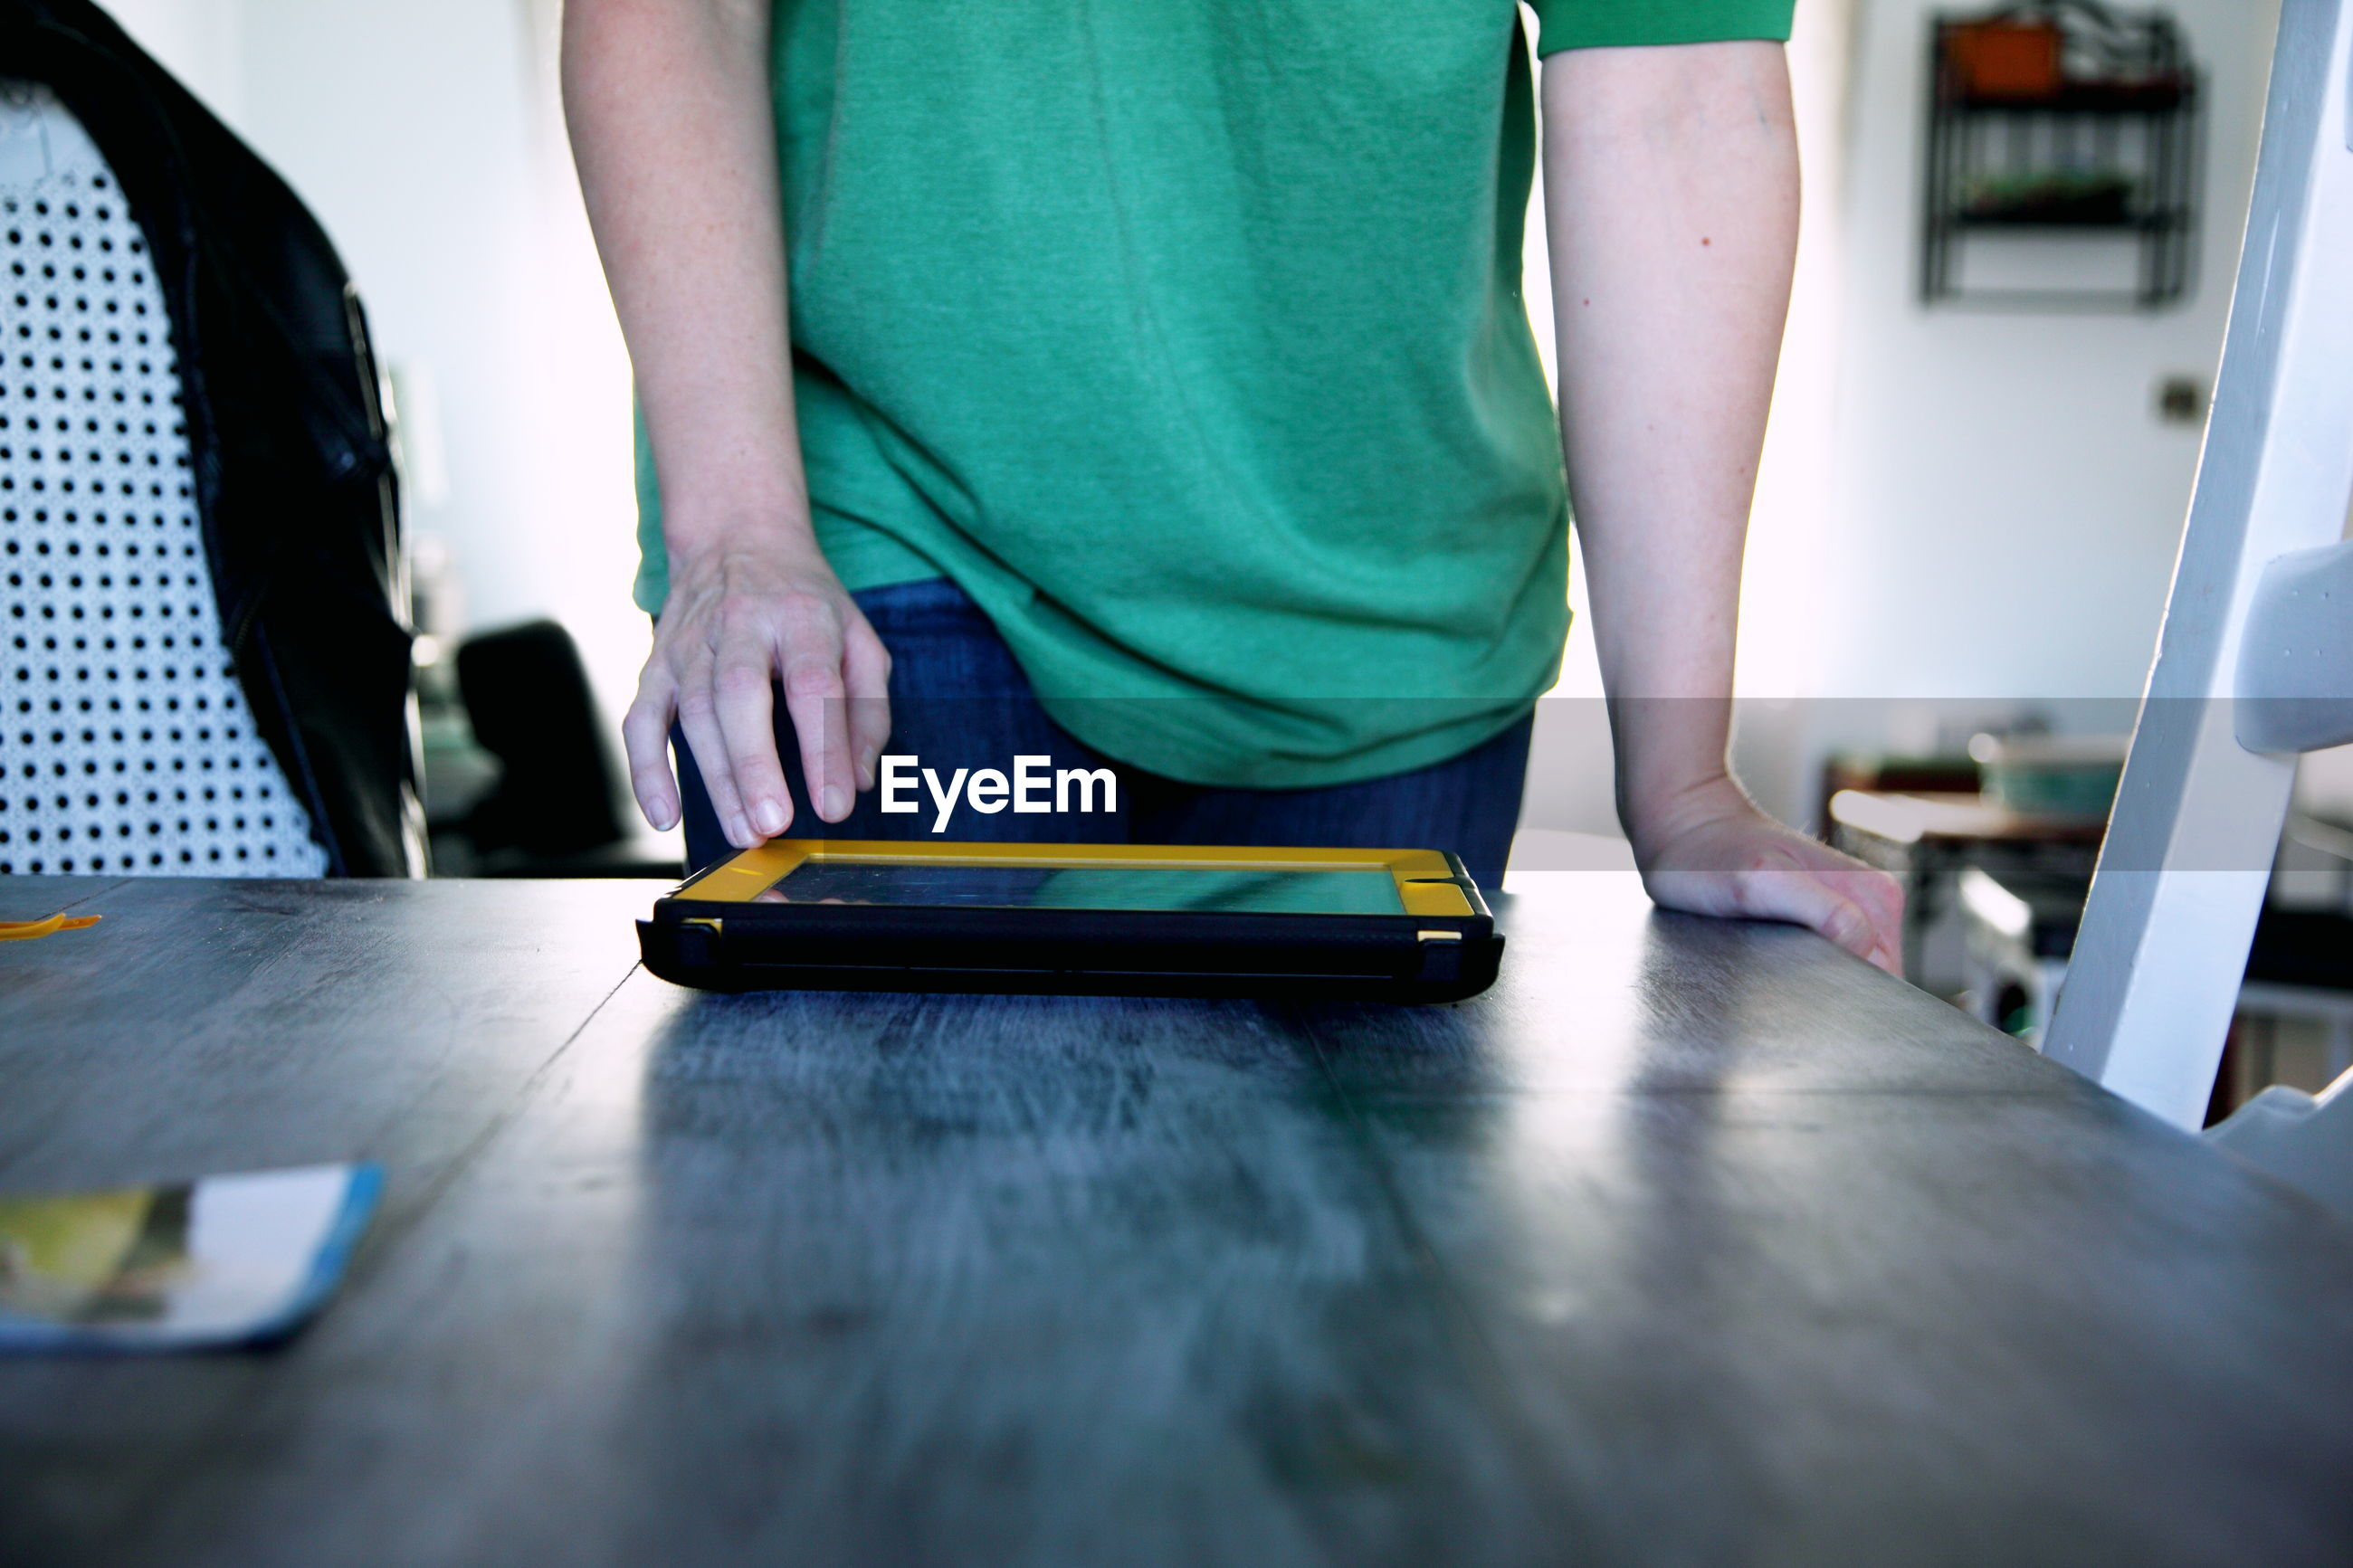 Midsection of man using digital tablet on table